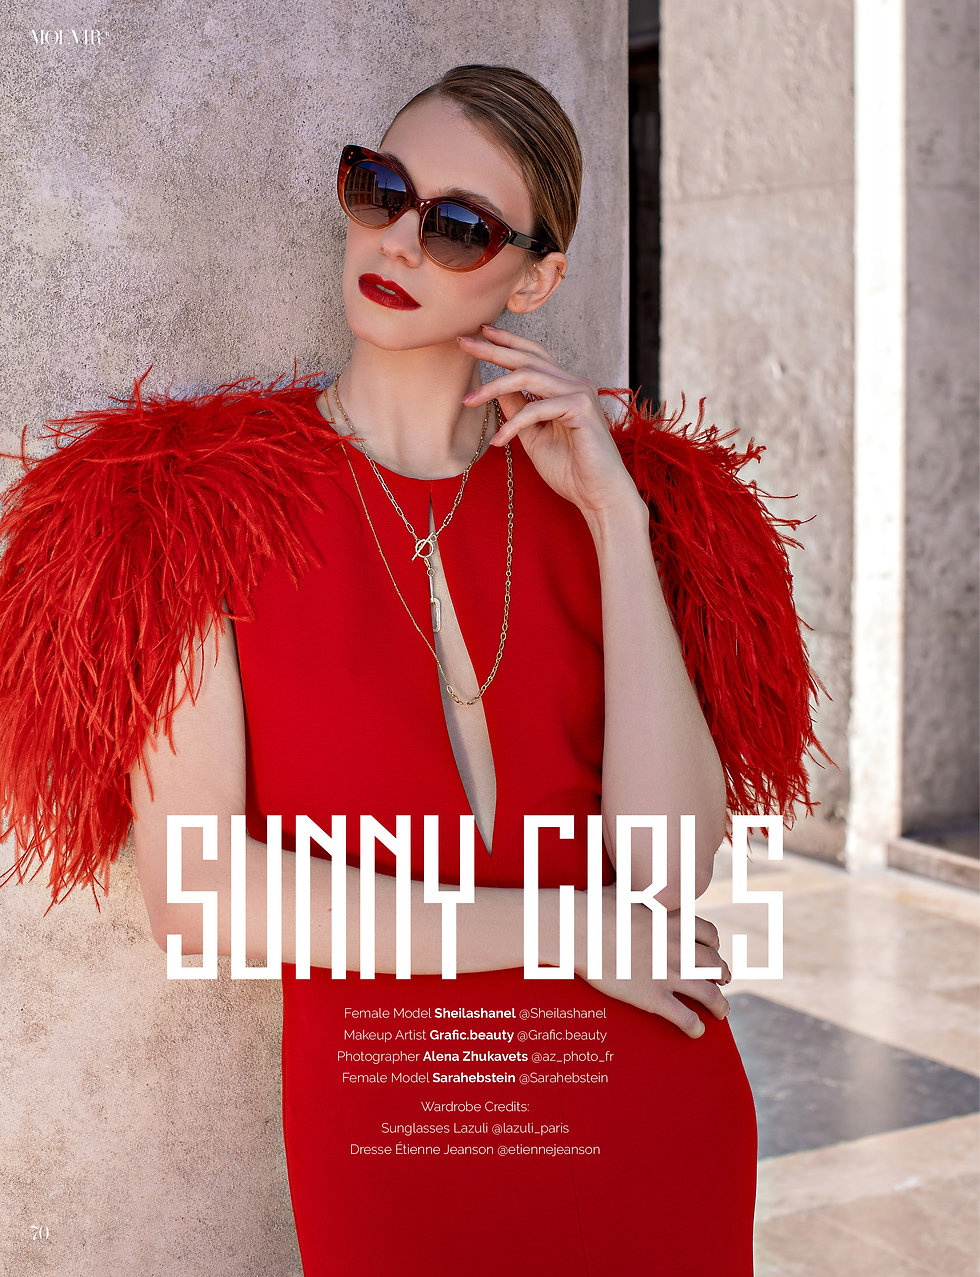 Sunny girl couverture.JPG